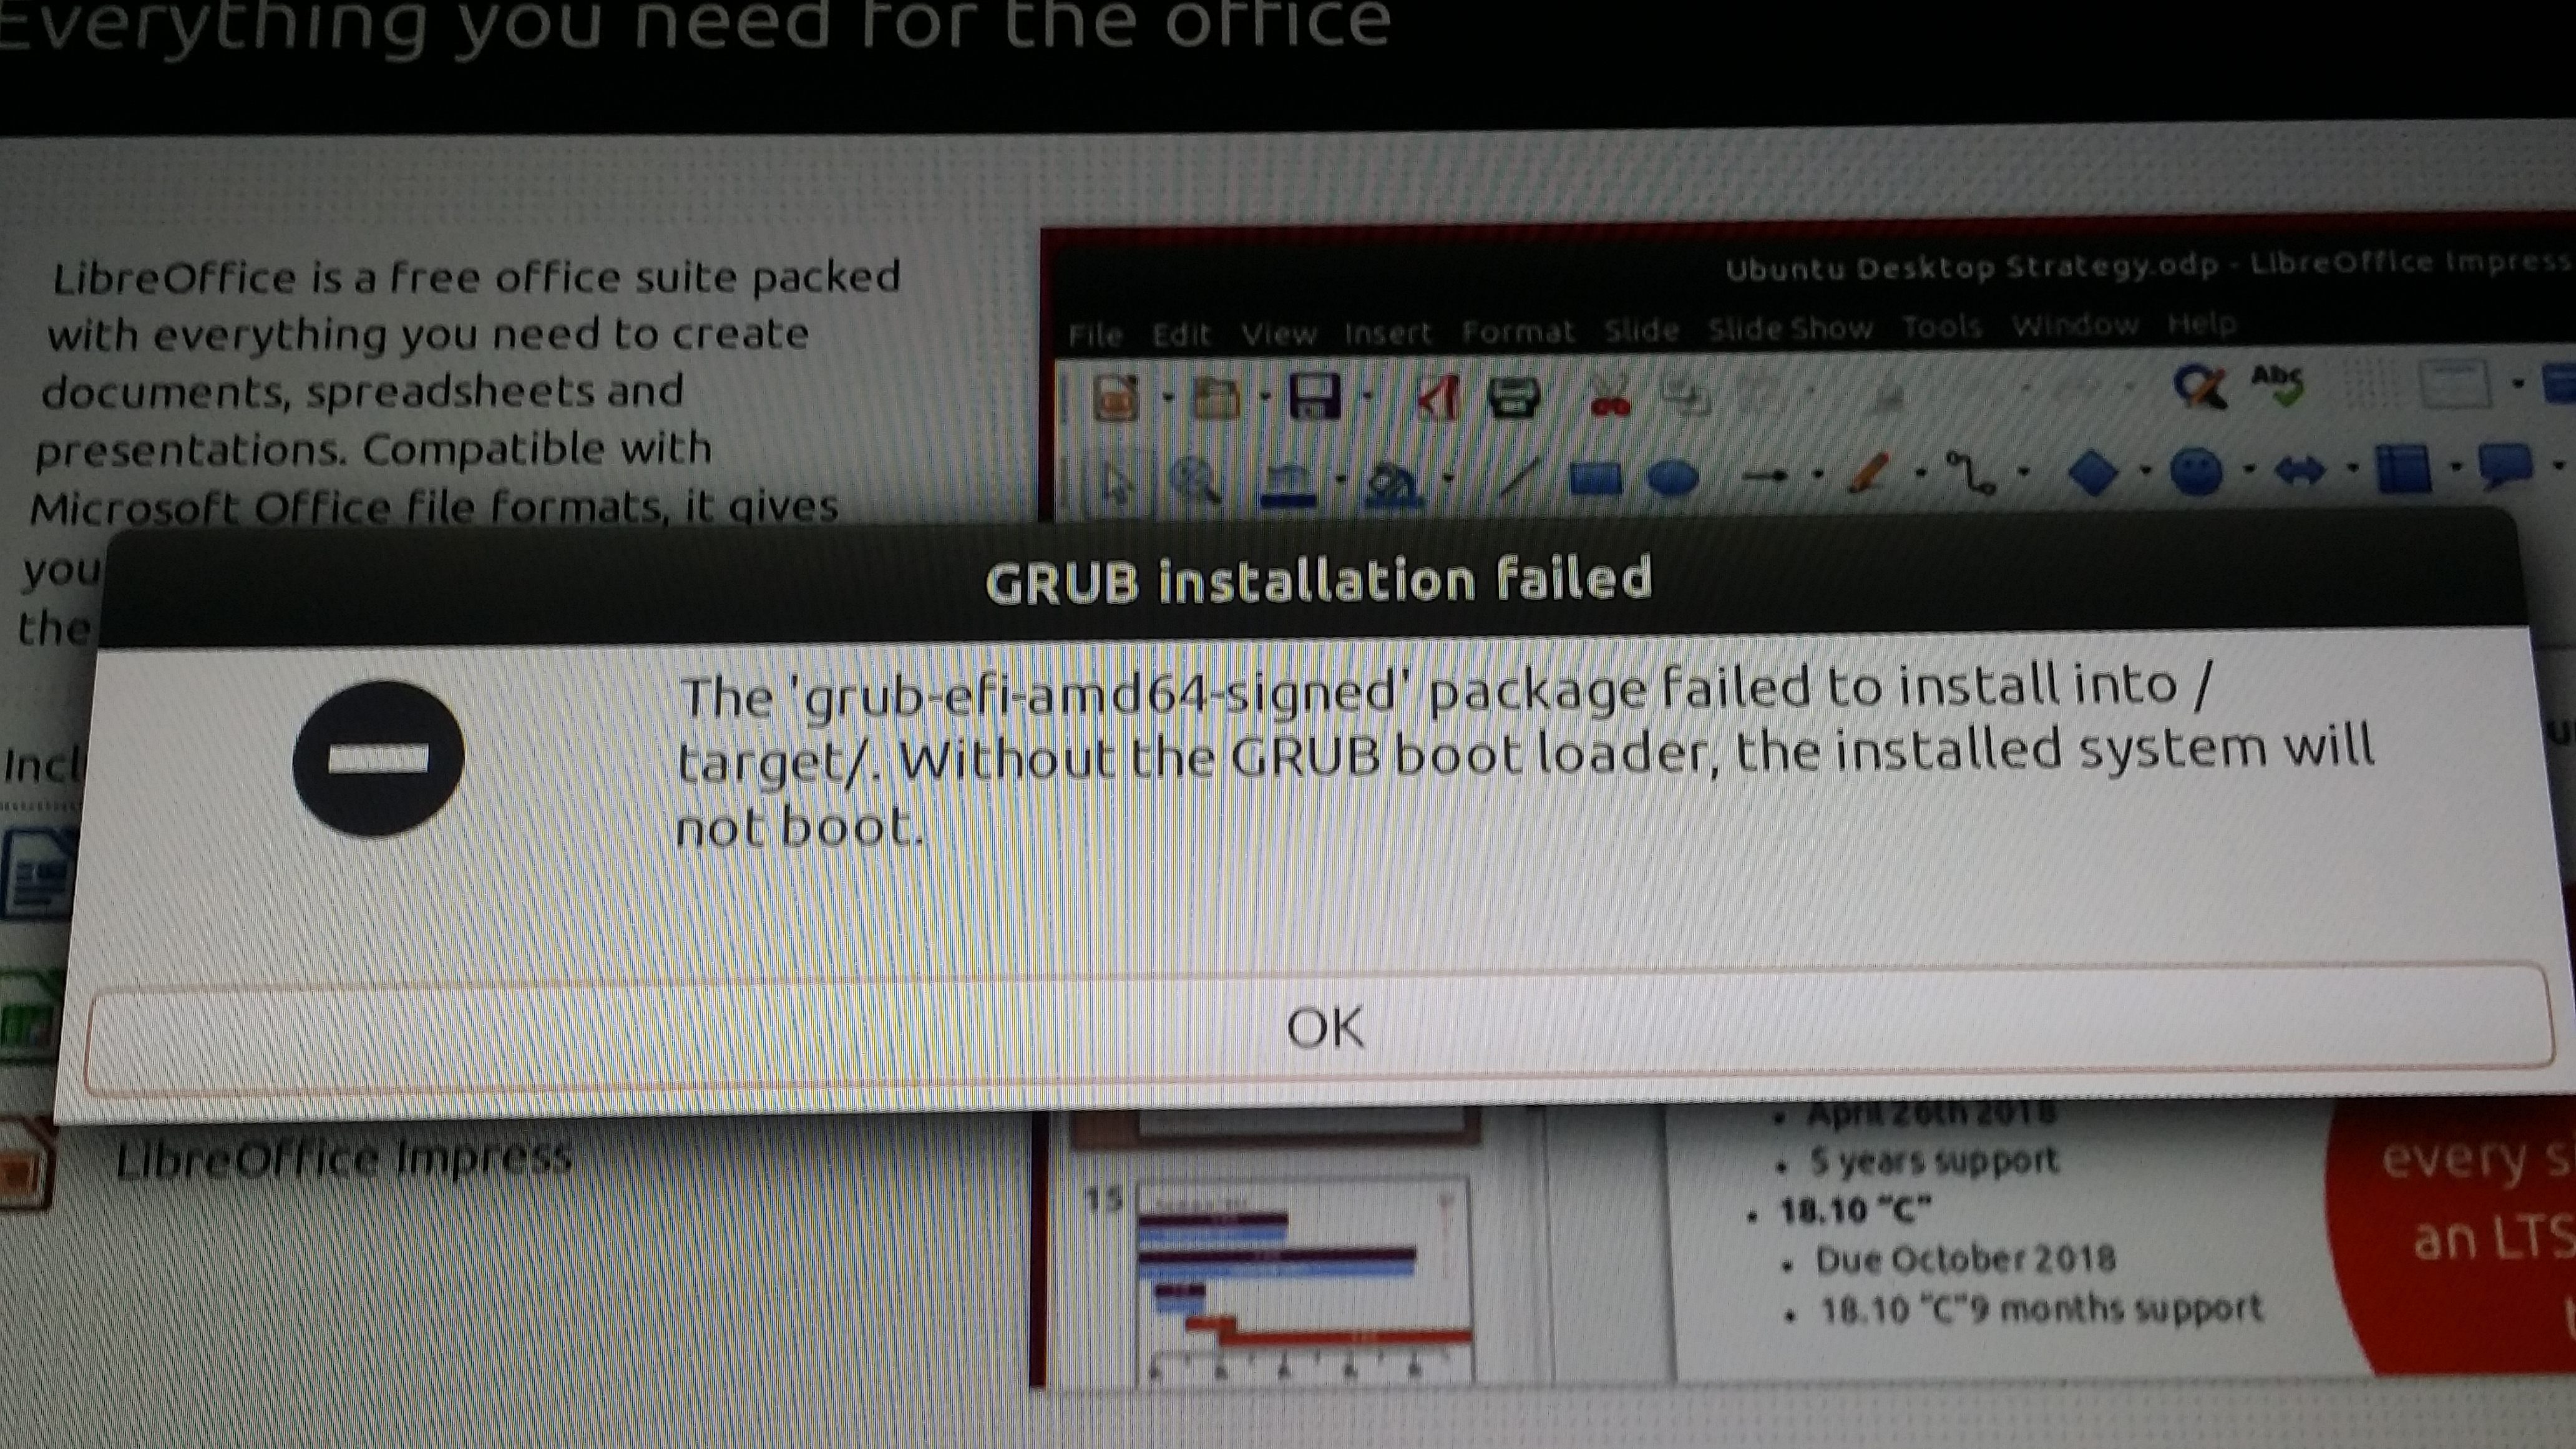 GRUB Boot loader failed on Surface Pro 3 Install - Linux, macOS and